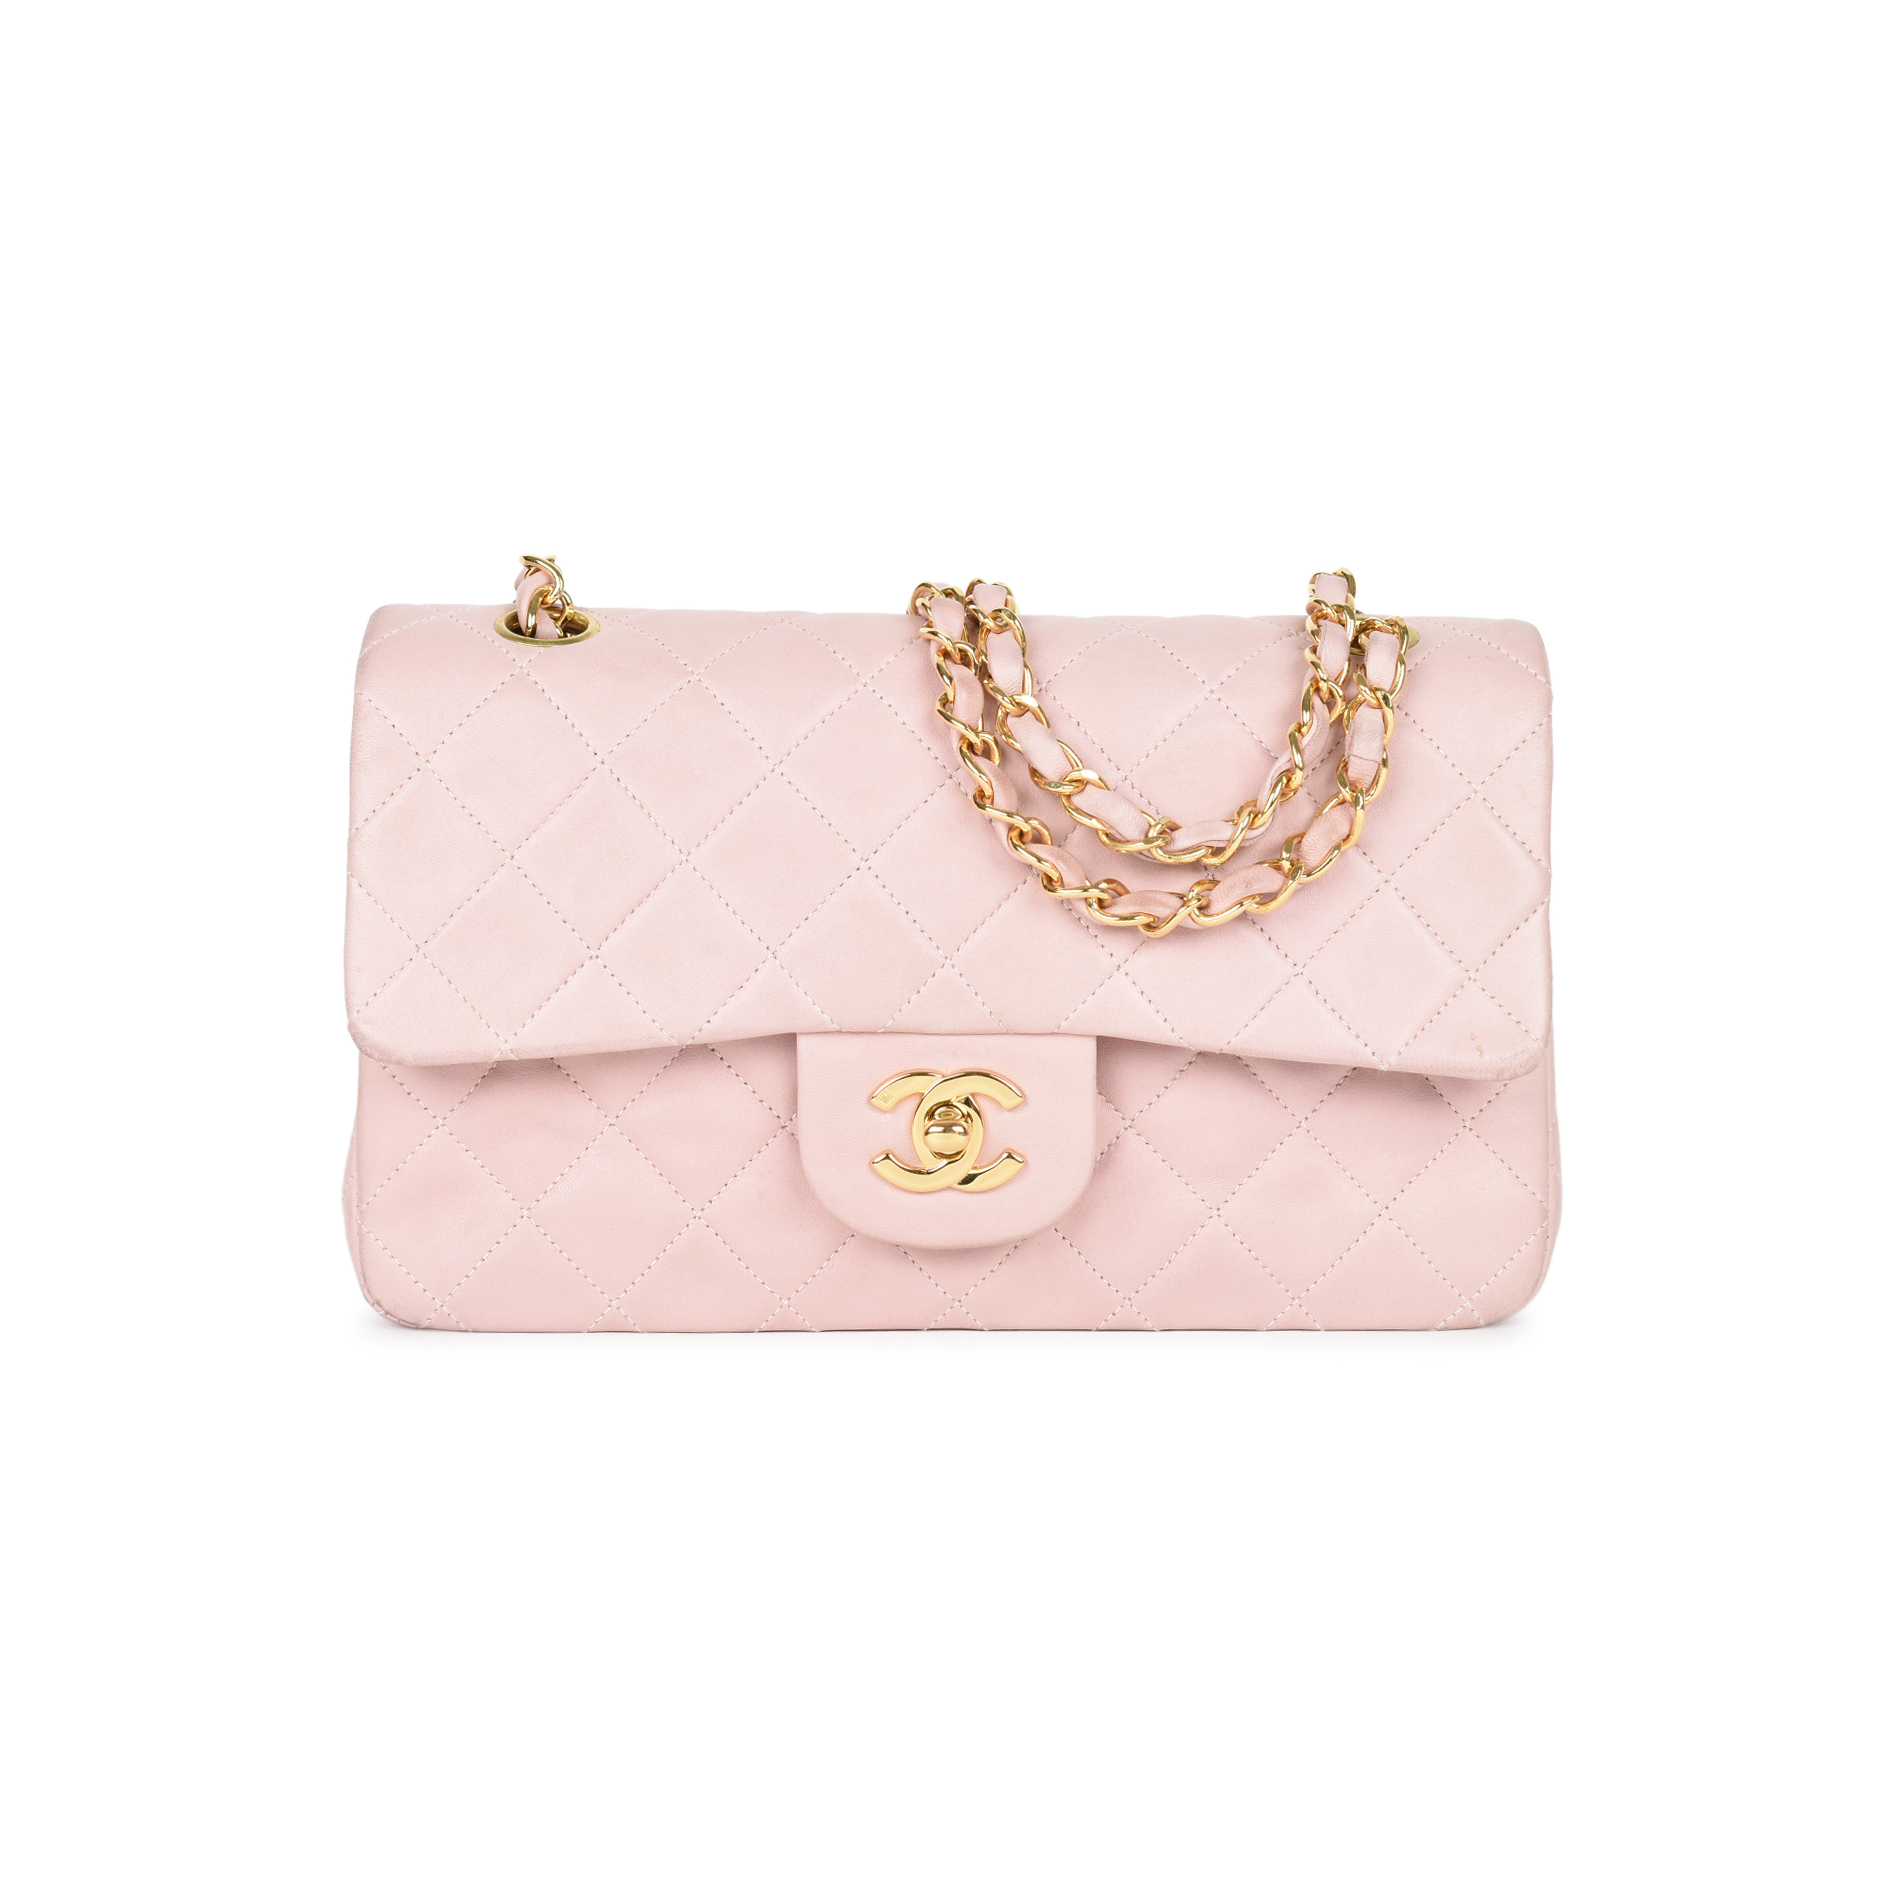 Chanel Baby Pink Small Classic Flap Bag